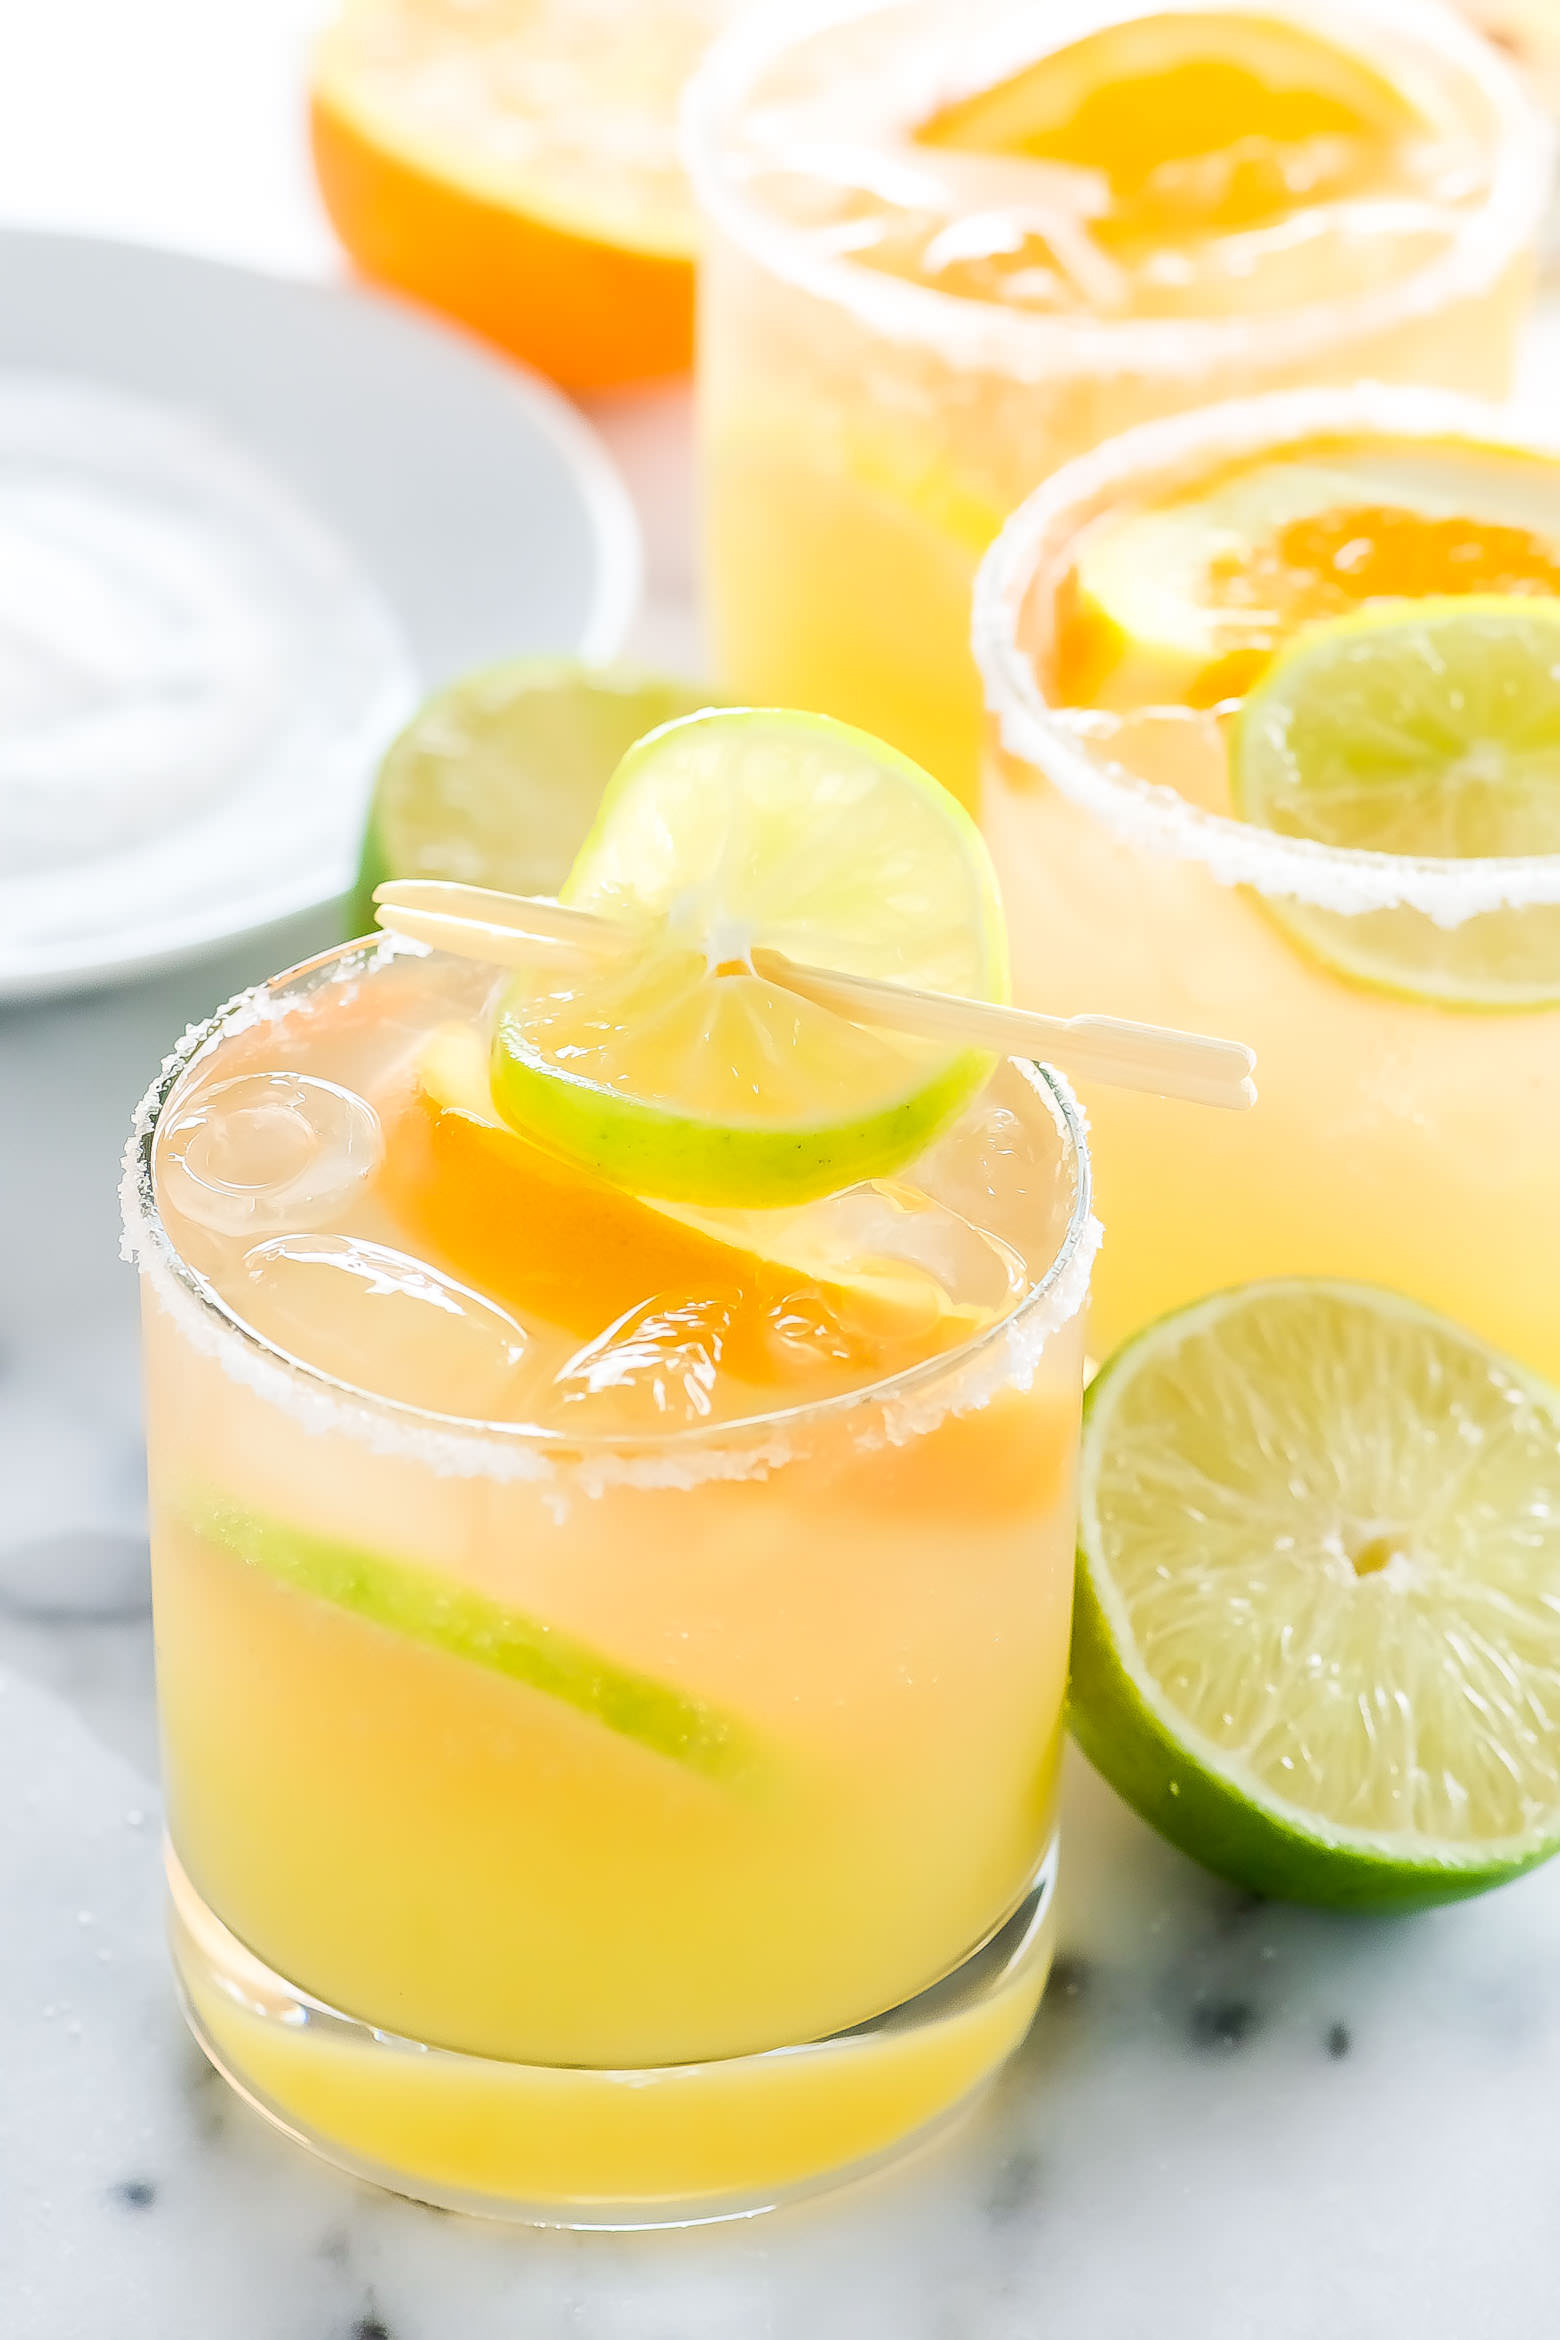 Rose Sangarita is for those moments when you can't decide between a fruity sangria and salty margarita! Tequila Blanco, mixed with fresh orange and lime juice then finished off with sparkling rose!